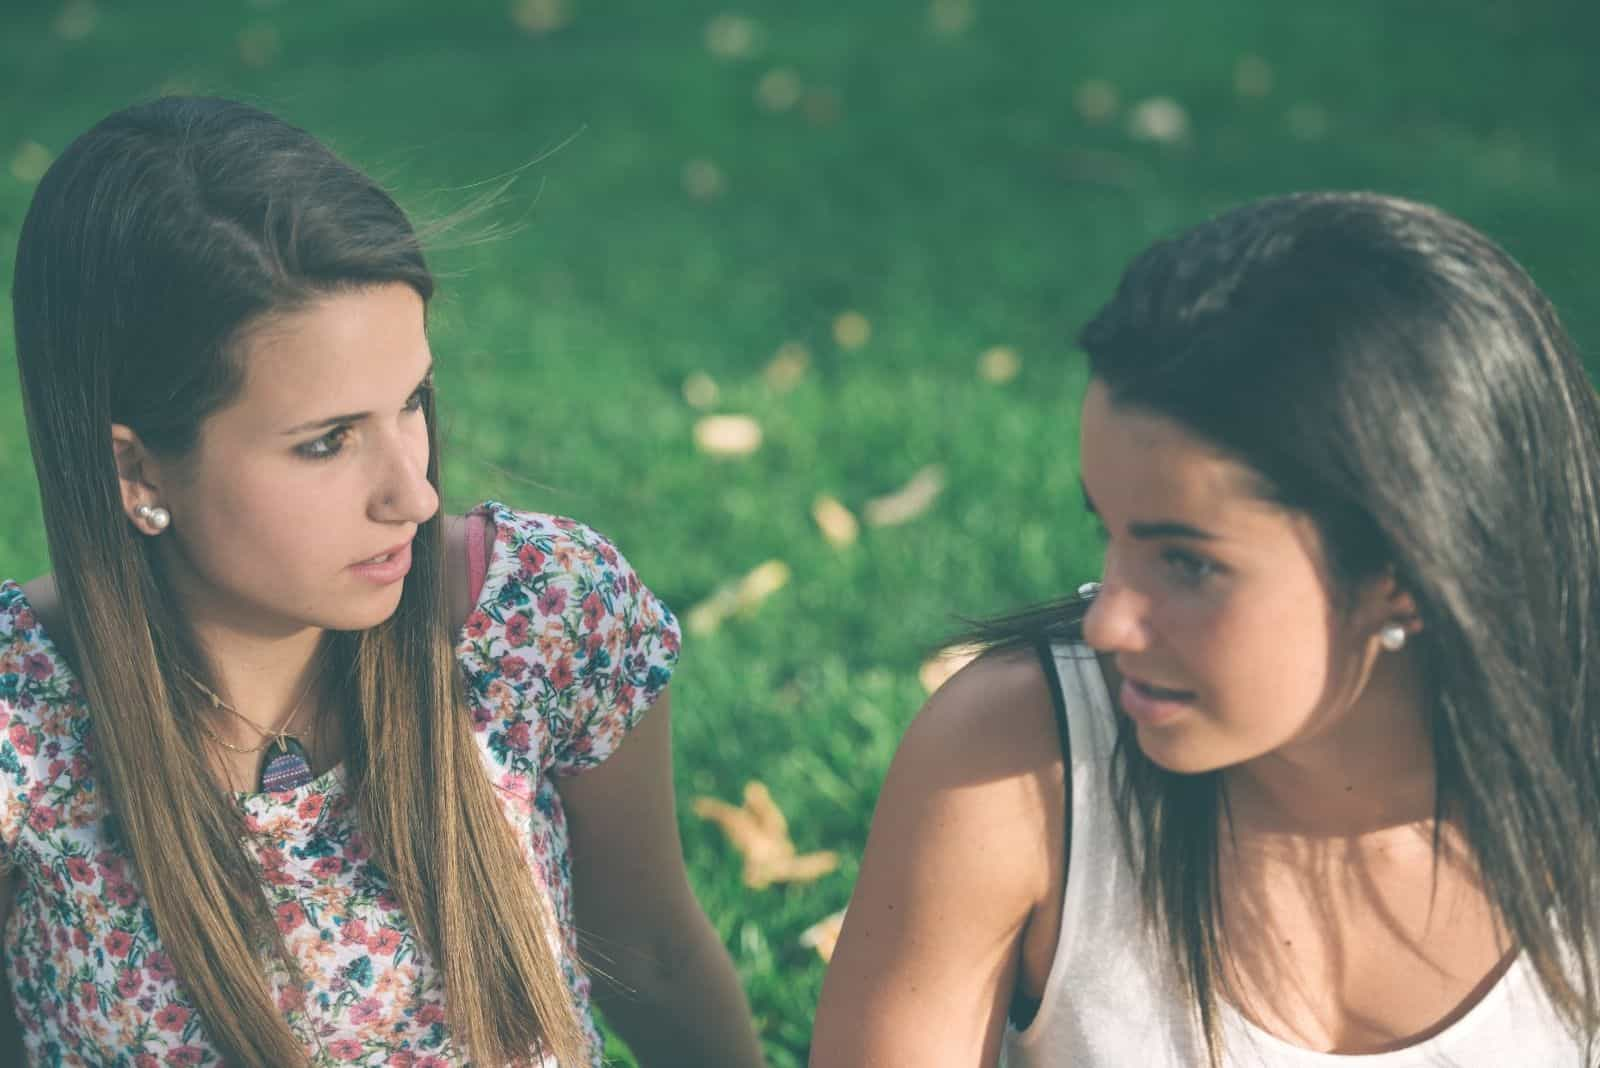 two young friends talking seriously outdoors sitting on the ground